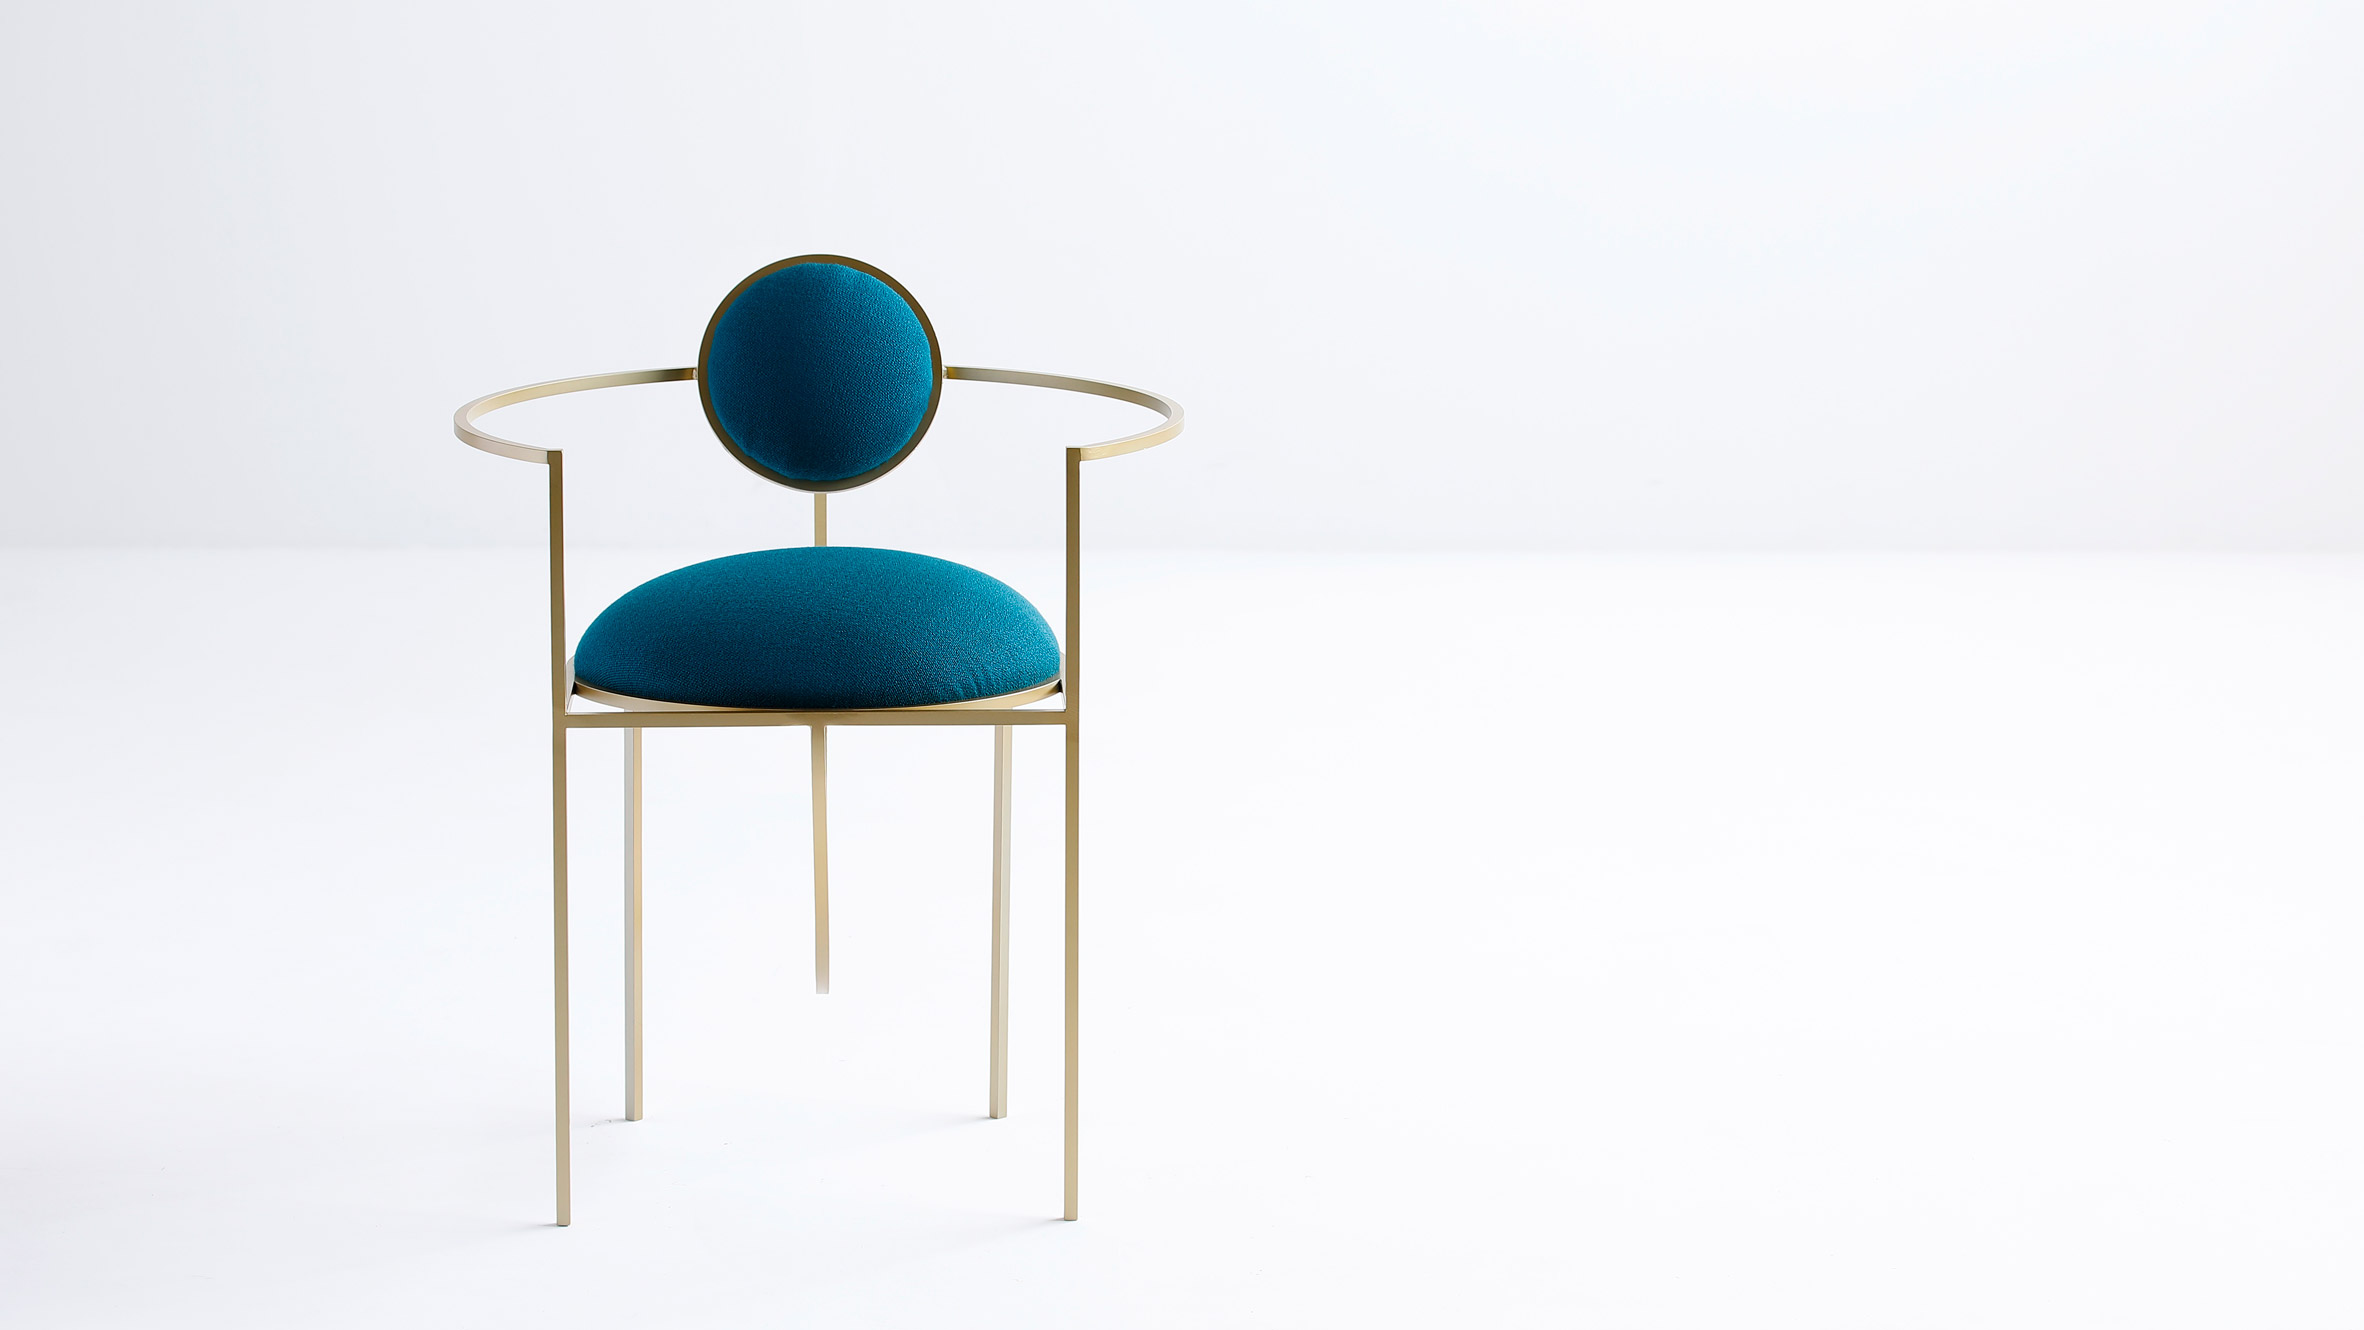 Lara Bohinc takes cues from celestial forms for first seating collection插图